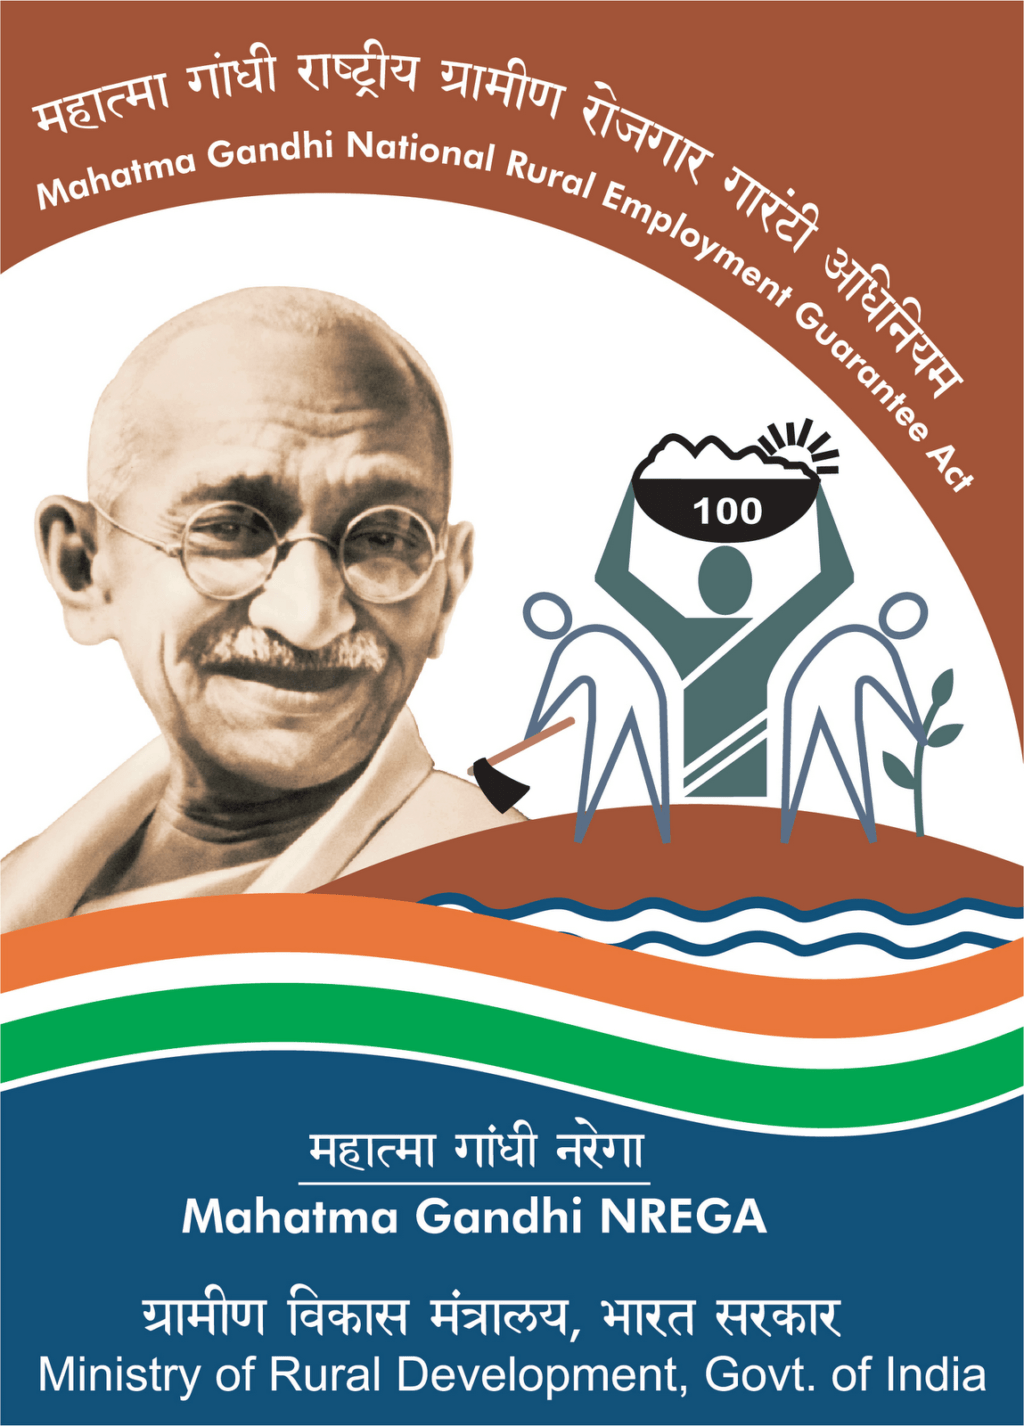 Government schemes for the poor Mahatma Gandhi National Rural Employment Guarantee Act